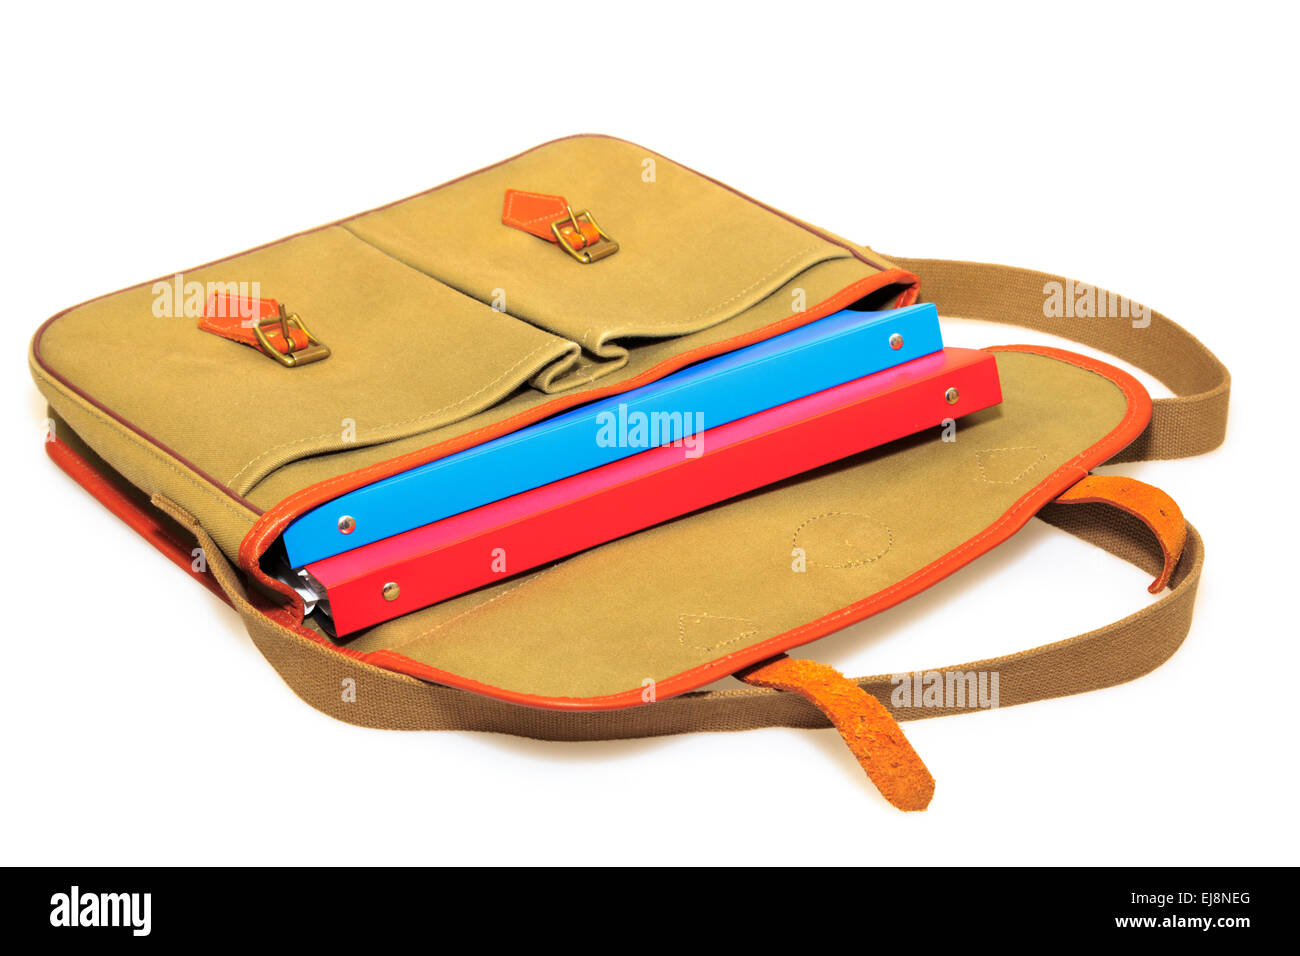 Traditional khaki canvas and leather briefcase containing red and blue folders isolated on a white background. Education - Stock Image